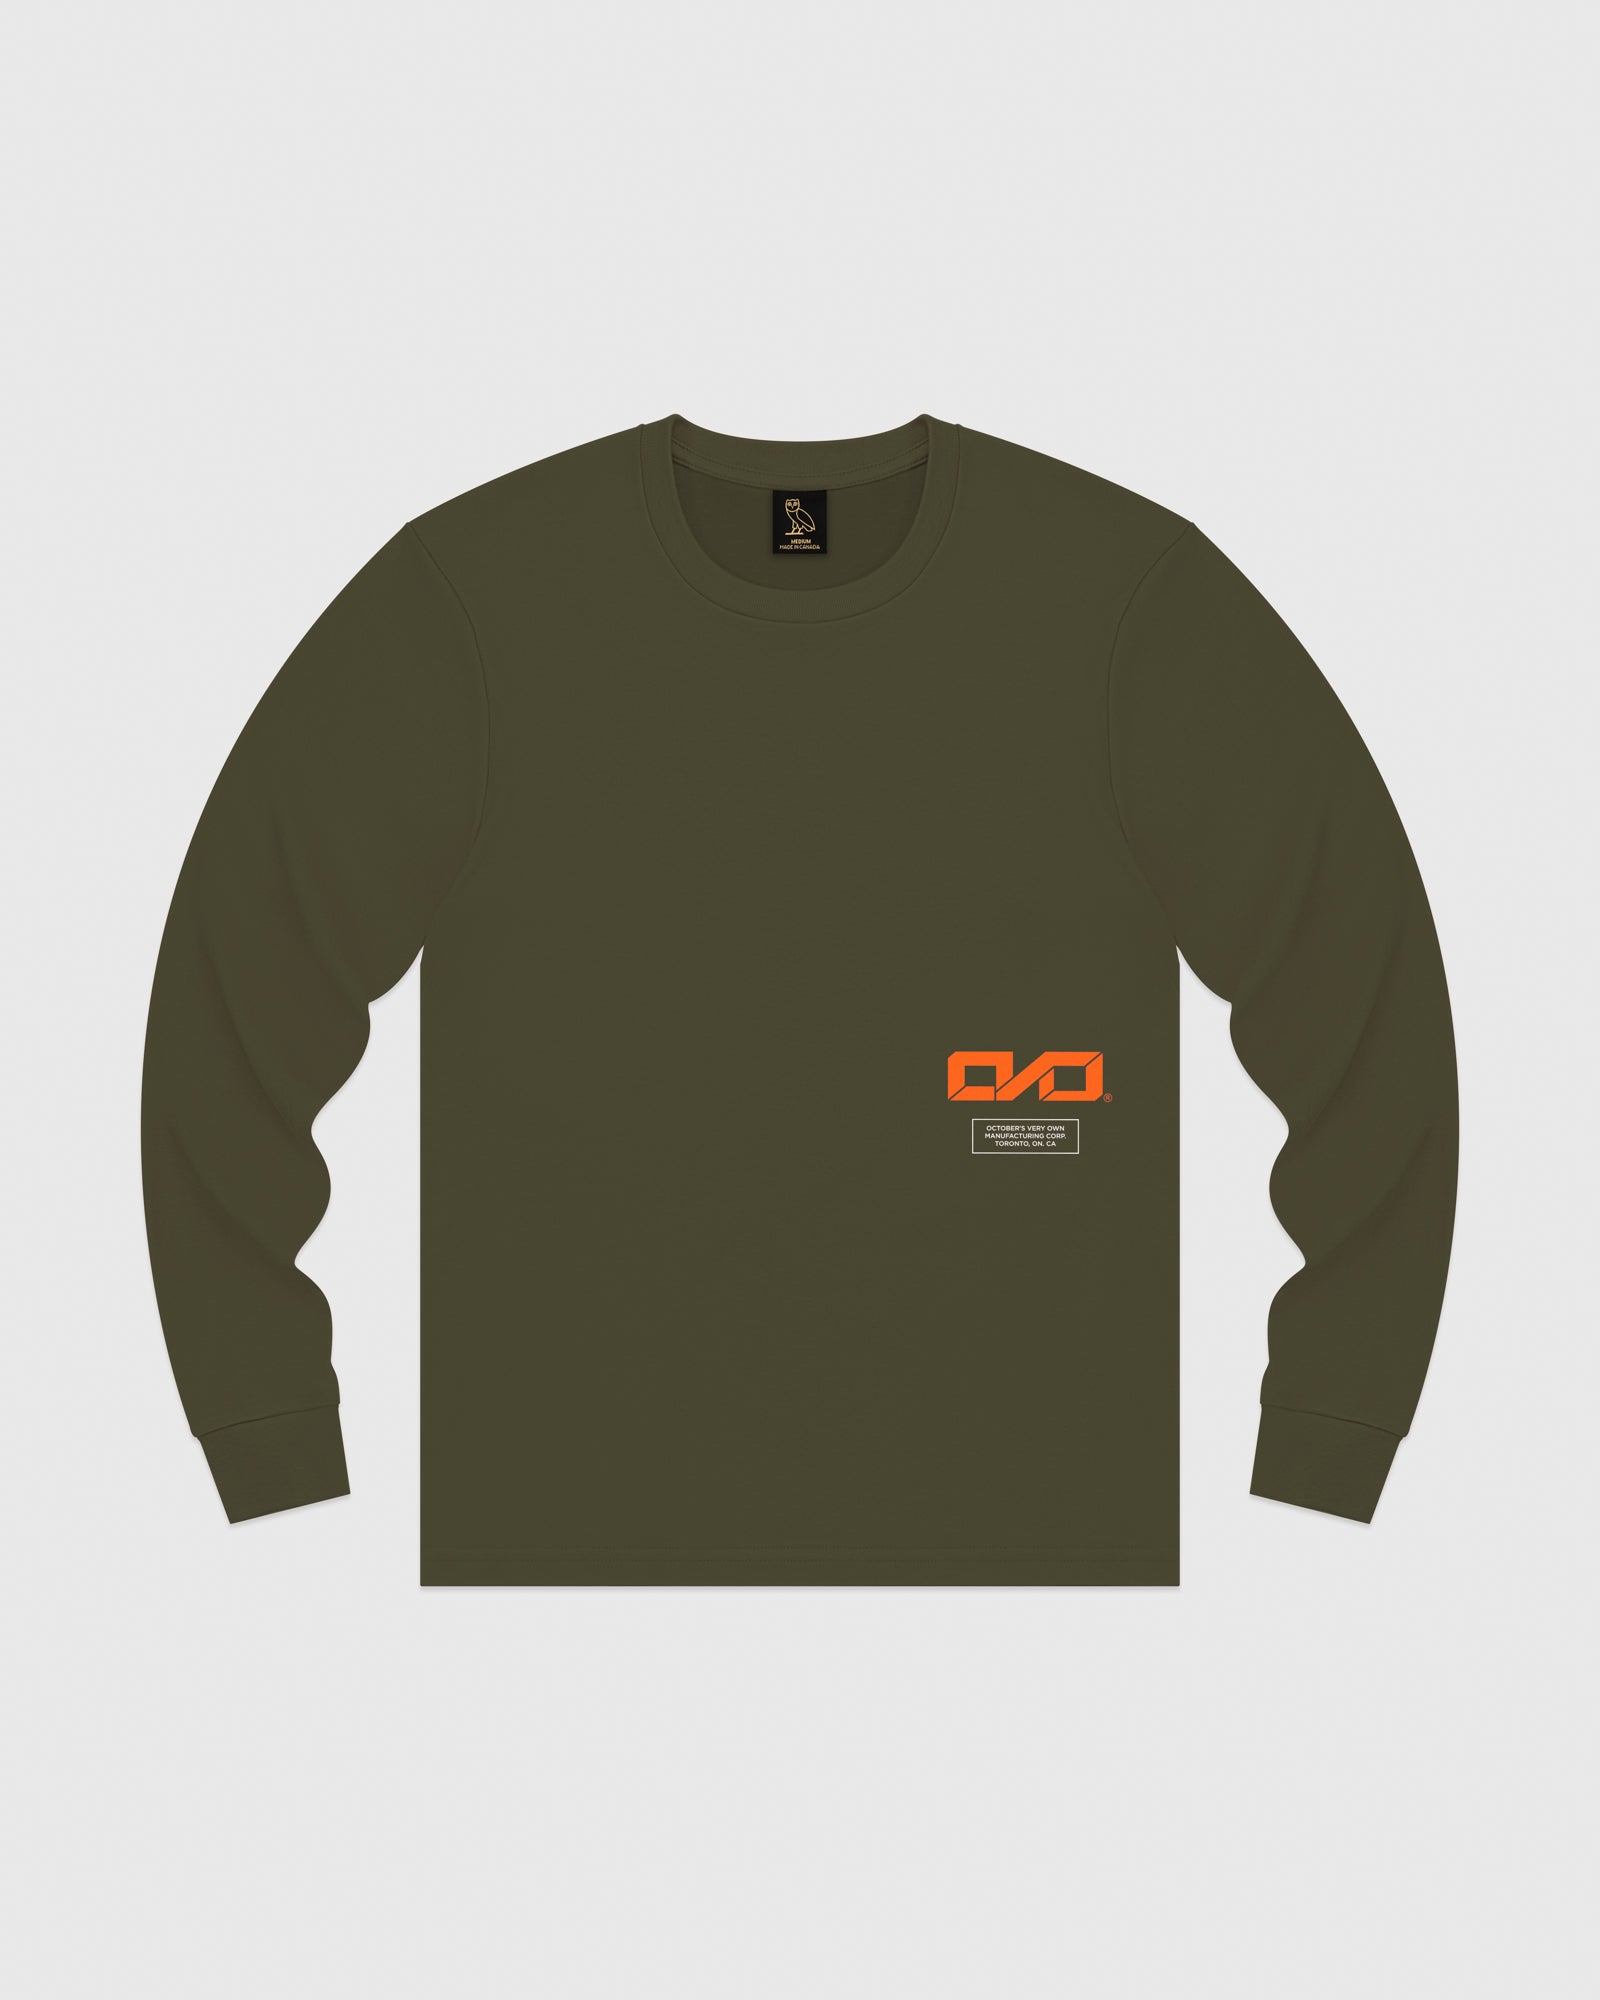 OVO INDUSTRIES LONGSLEEVE T-SHIRT - LEAF GREEN IMAGE #1